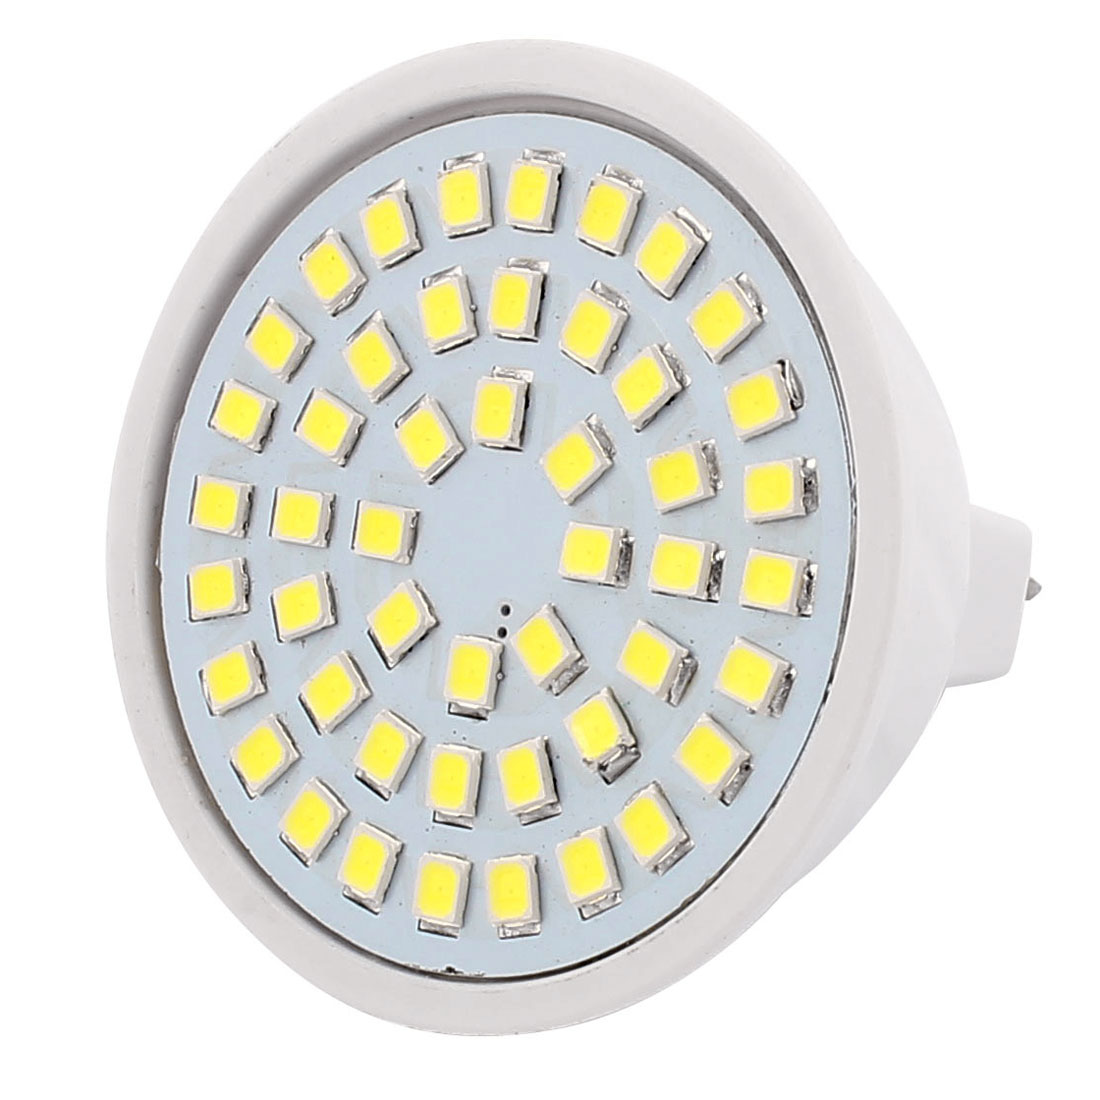 MR16 SMD 2835 48 LEDs Plastic Energy-Saving LED Lamp Bulb White AC 220V 4W